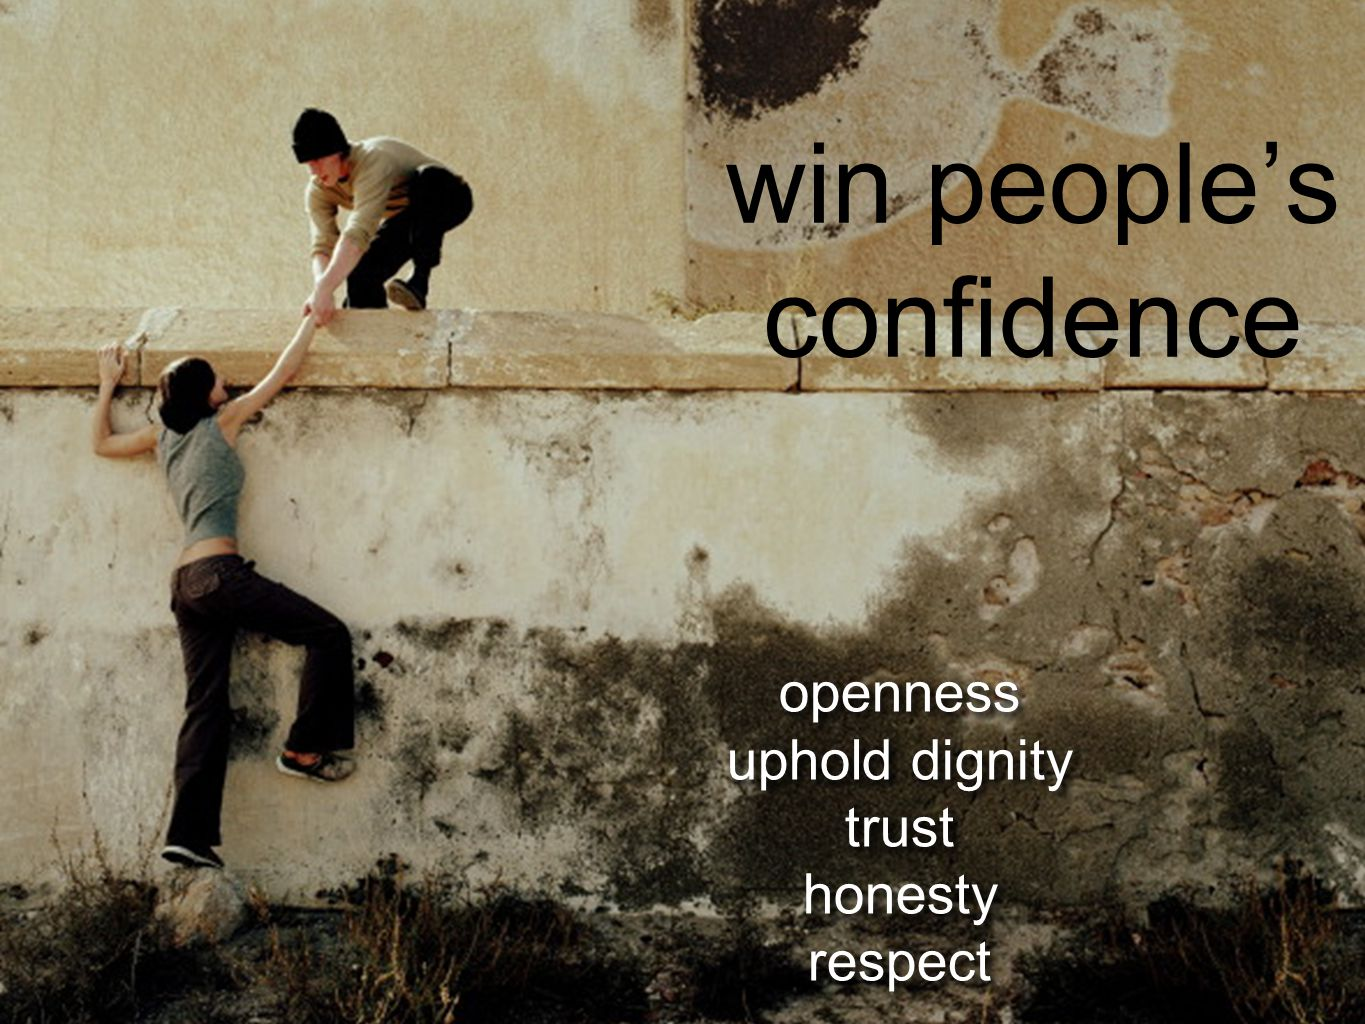 openness uphold dignity trust honesty respect openness uphold dignity trust honesty respect win people's confidence